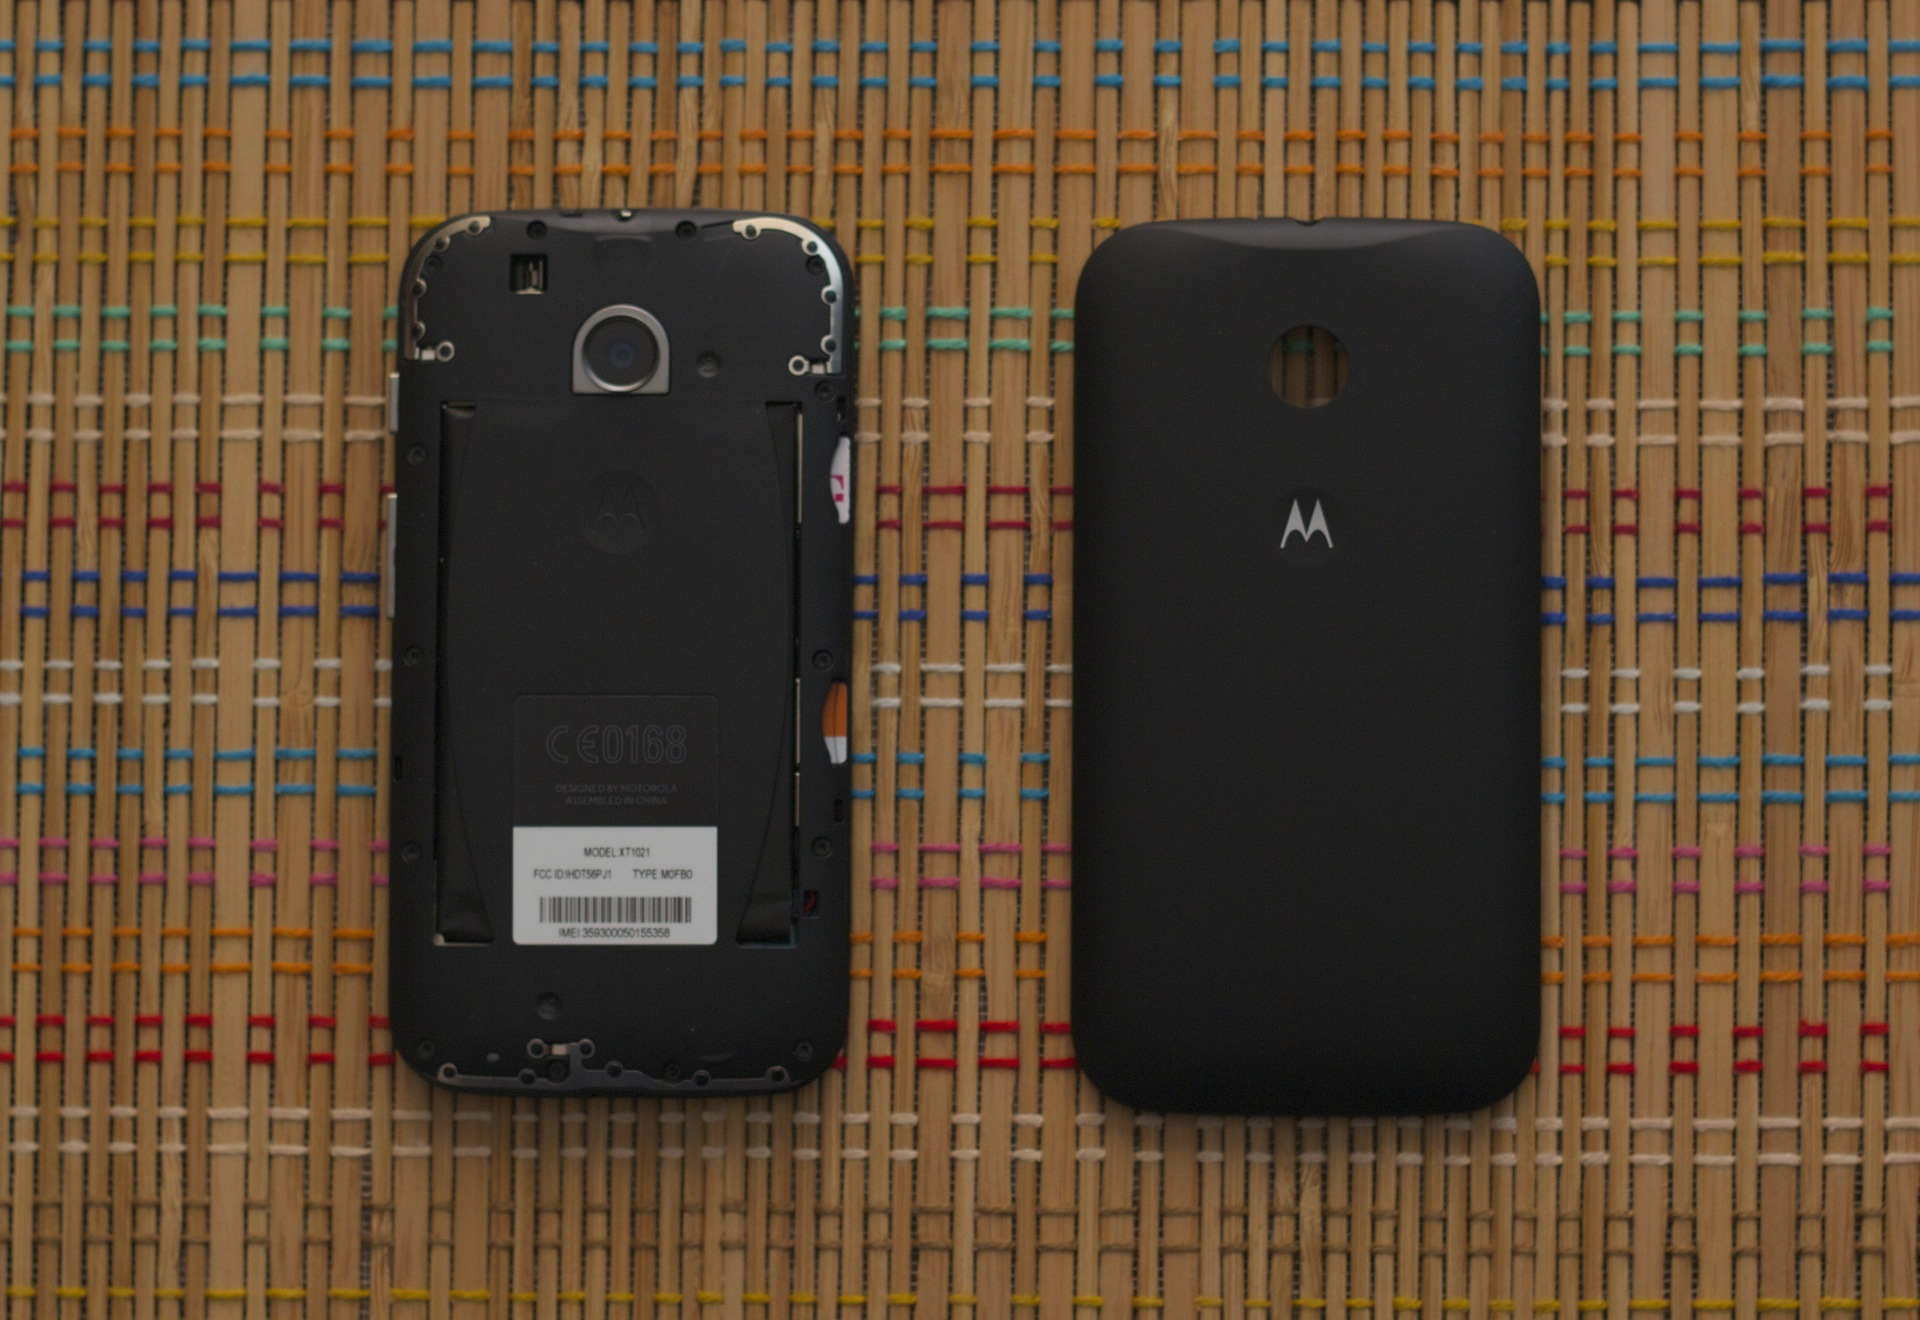 Like the Moto G, the Moto E has removable backs that are available in many colors.